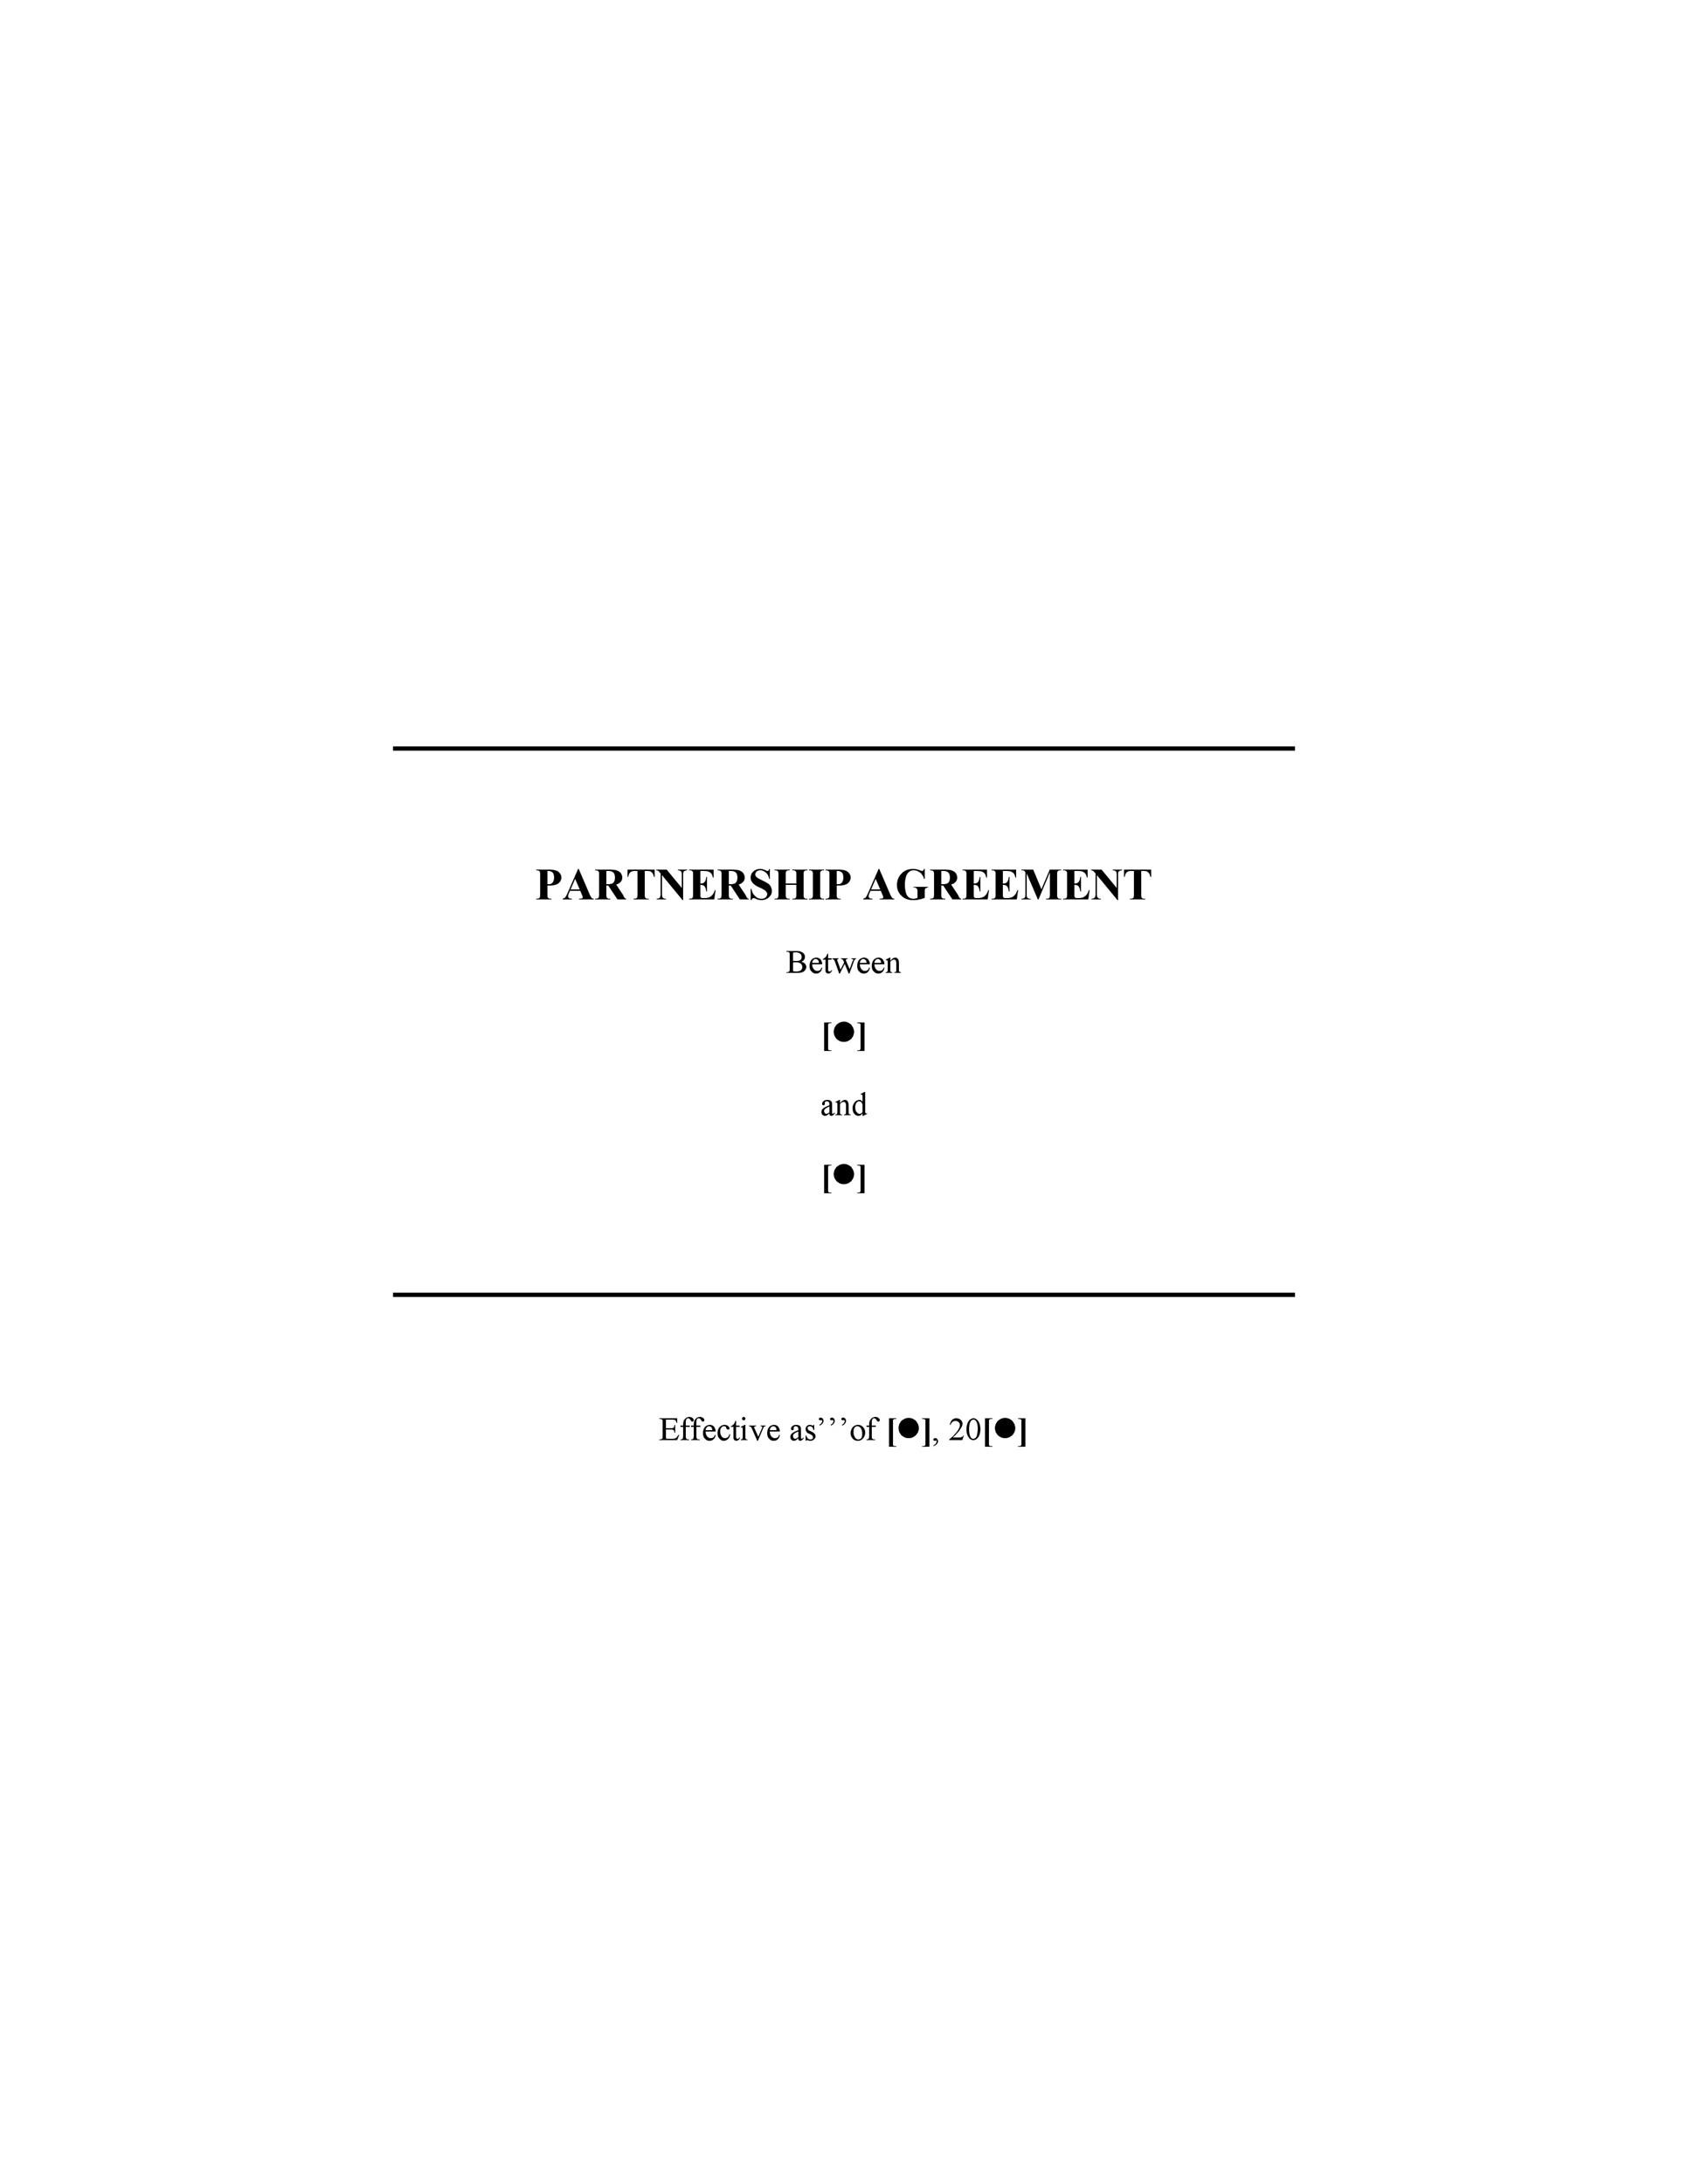 40 free partnership agreement templates business general printable partnership agreement template 01 platinumwayz